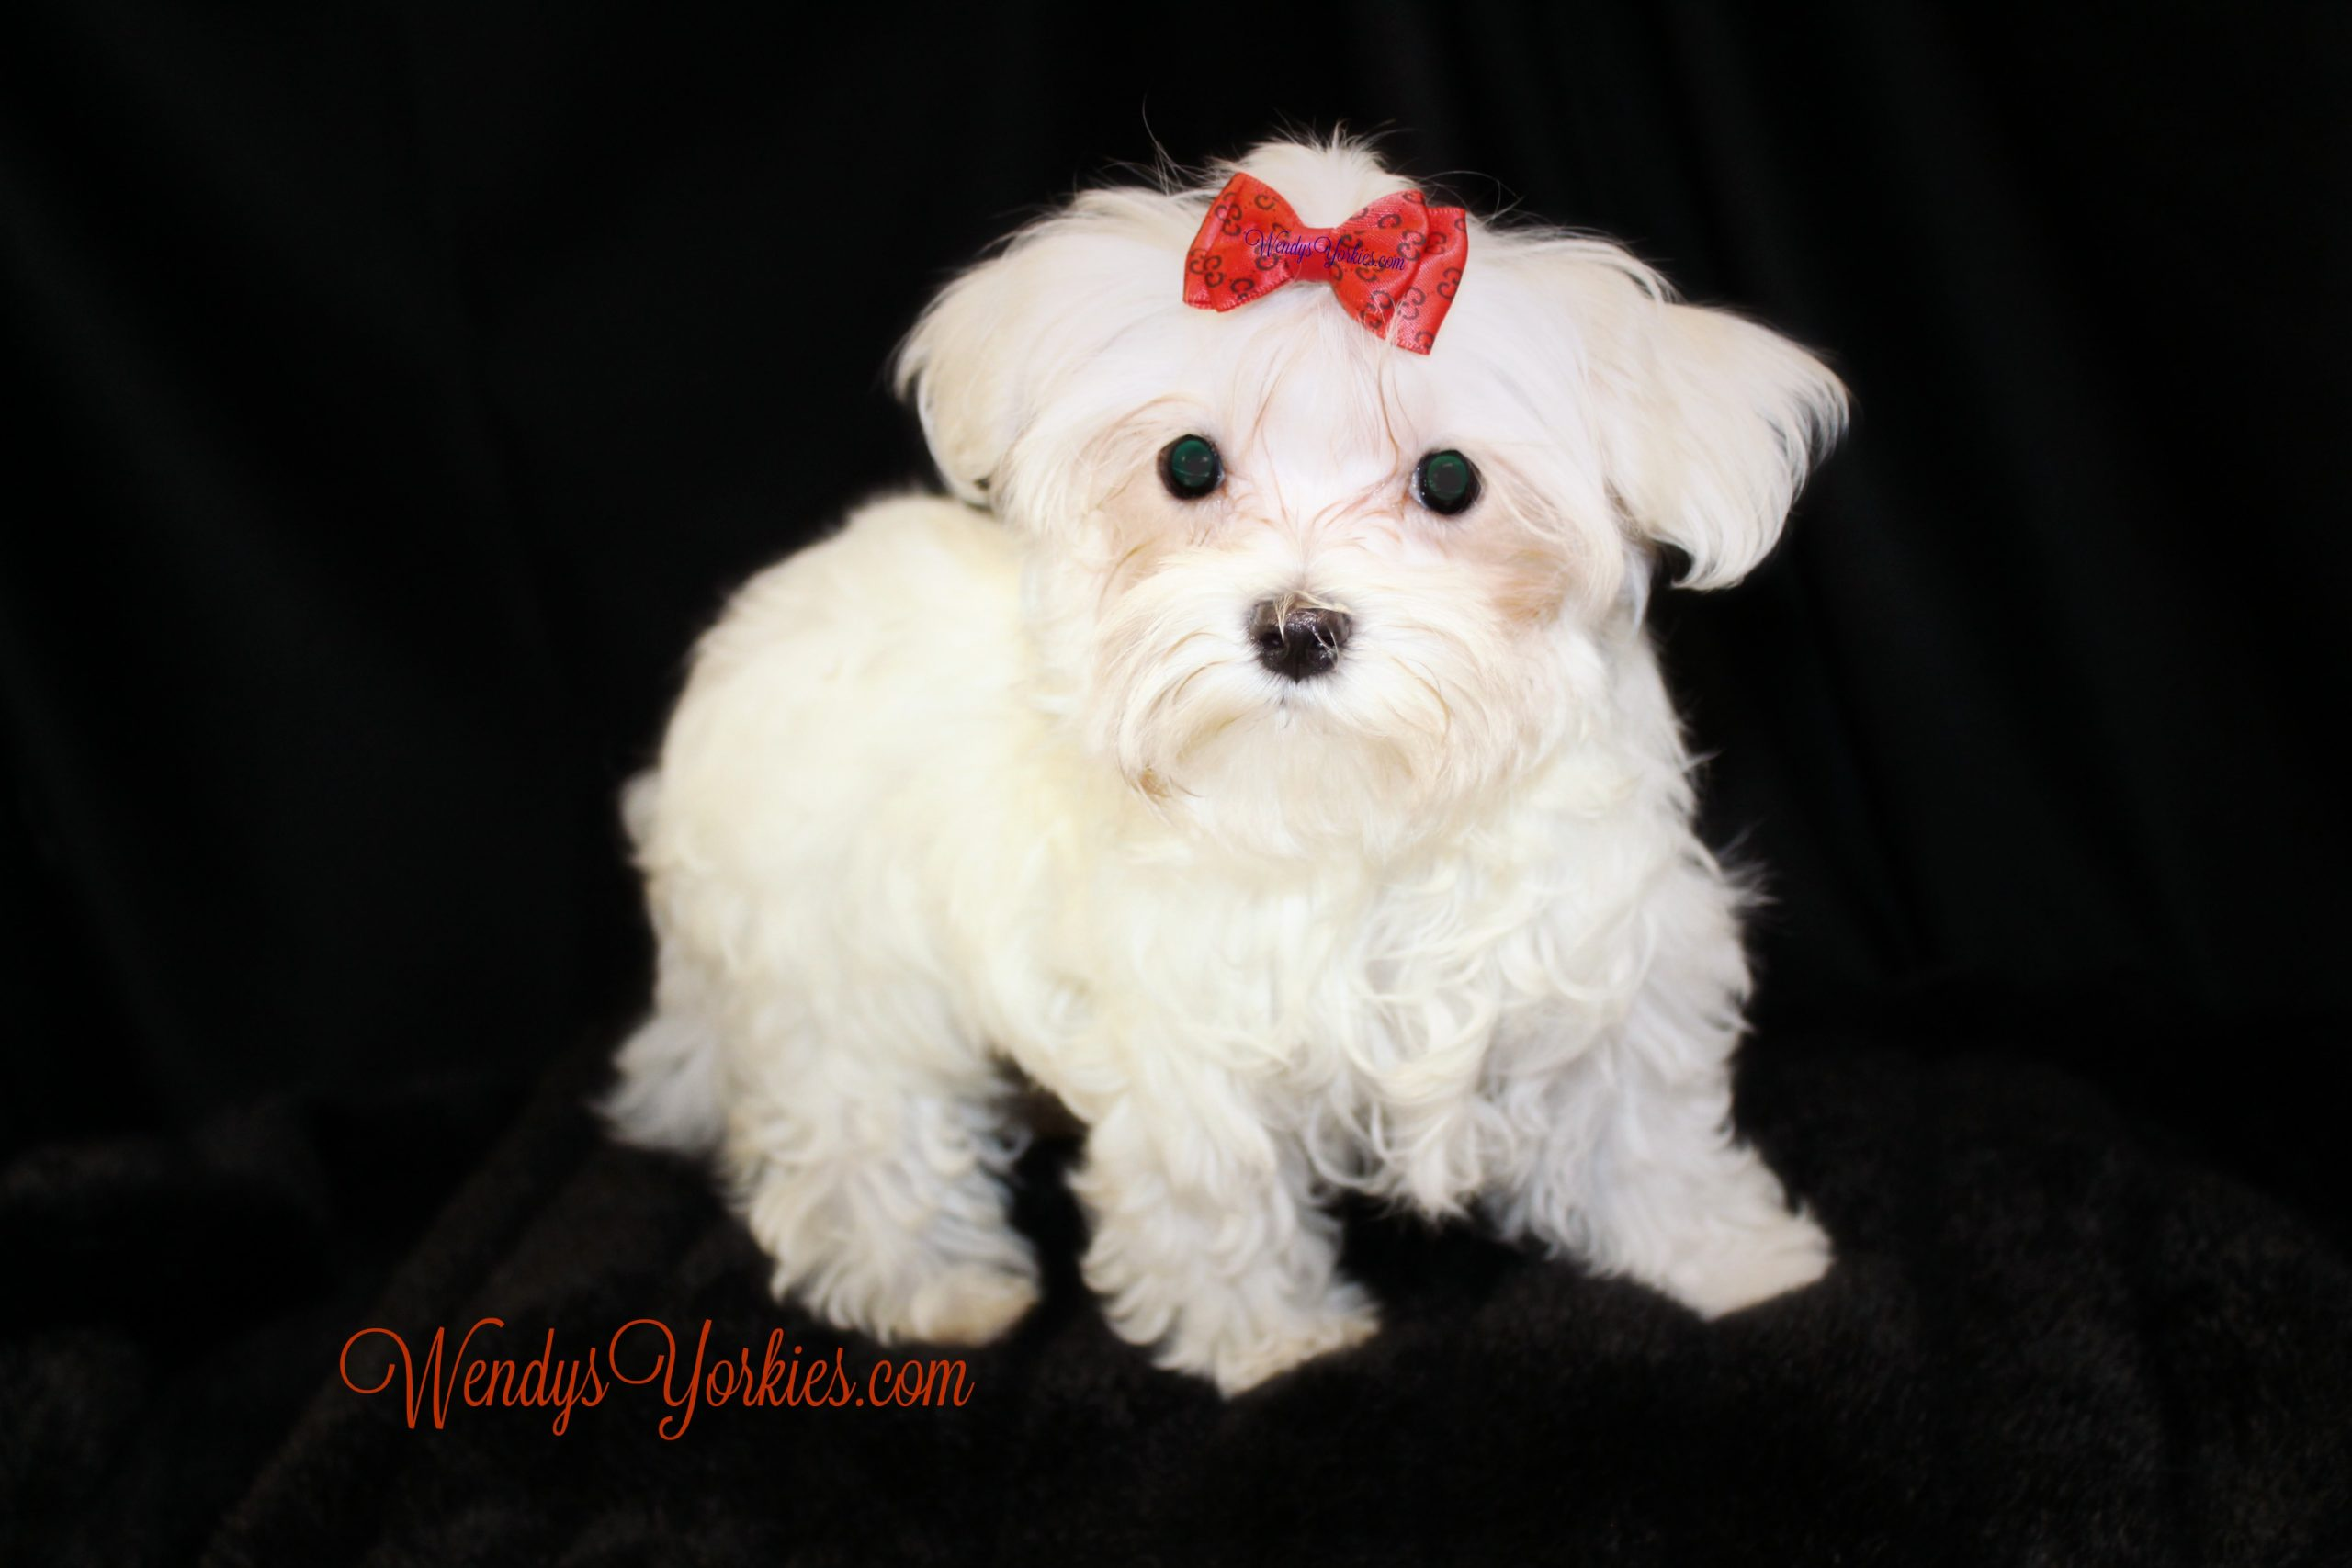 Male Maltese puppy for sale, WendysYorkies.com